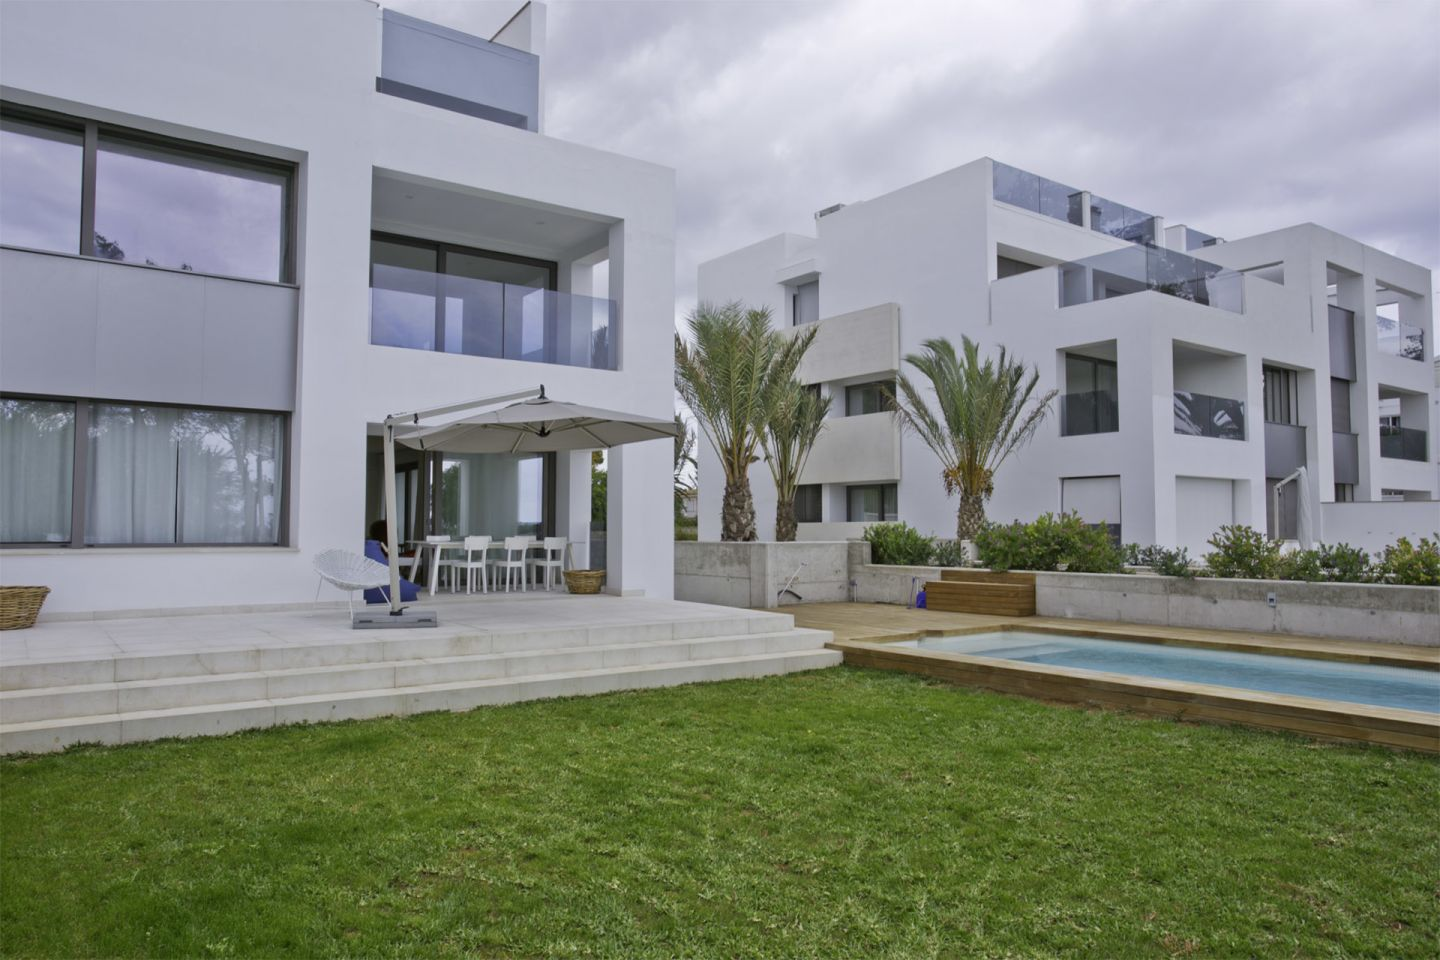 3 Bed Ground Floor for sale in ALCUDIA 12